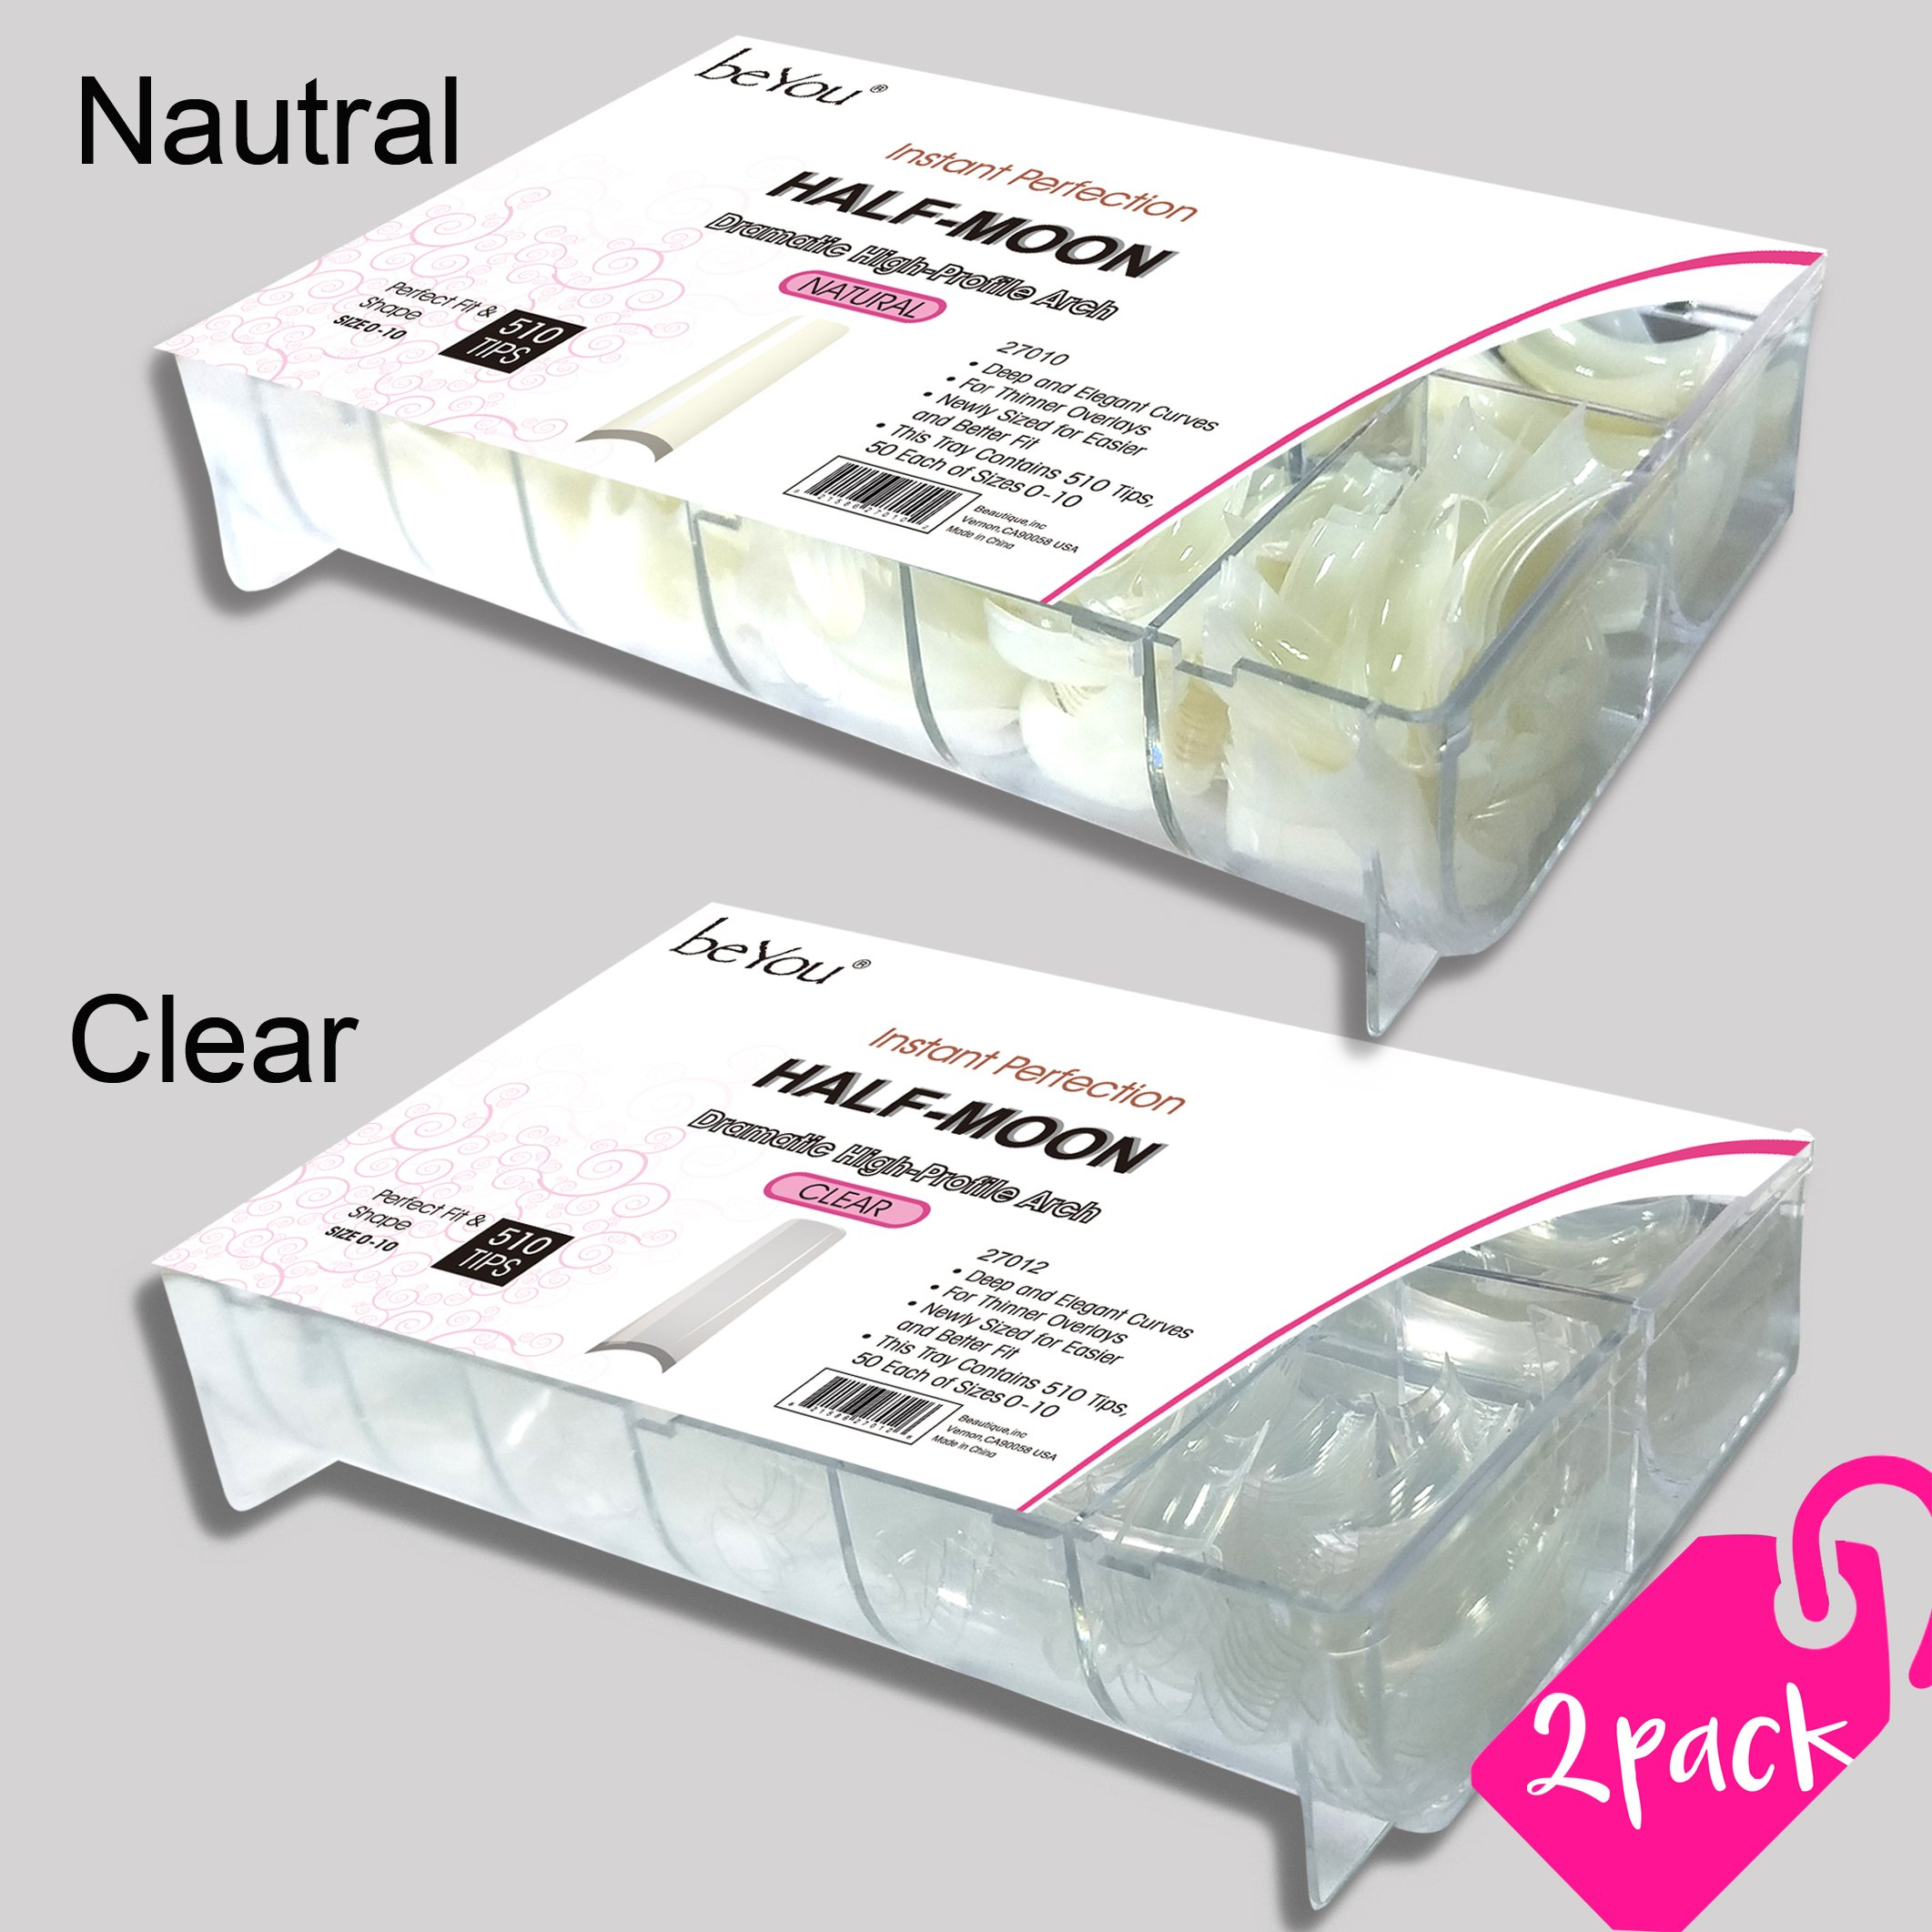 beYou 2PACK Natural/Clear Half-moon 550 Artificial Fake Nails (total 1100Tips) 11Sizes For Nail Salon Nail Shop 27010/27012 (Half-Moon) by BE.YOU.